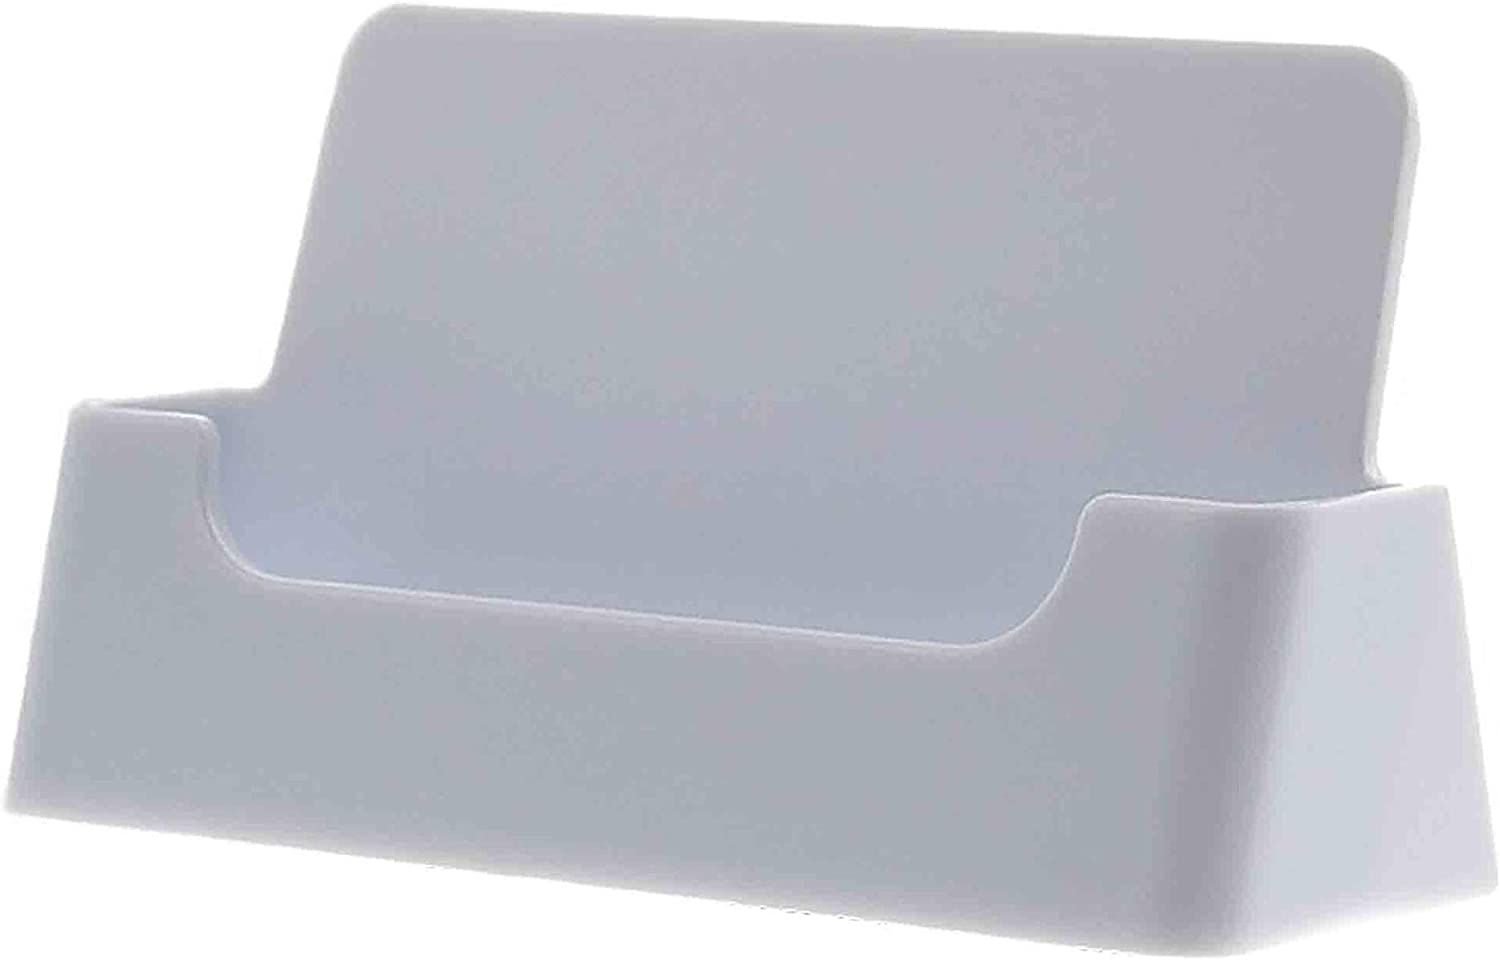 Marketing Holders Business Card Holders Gift Appointment Cards Display Stand Girls Office Desk Table or Counter White Acrylic